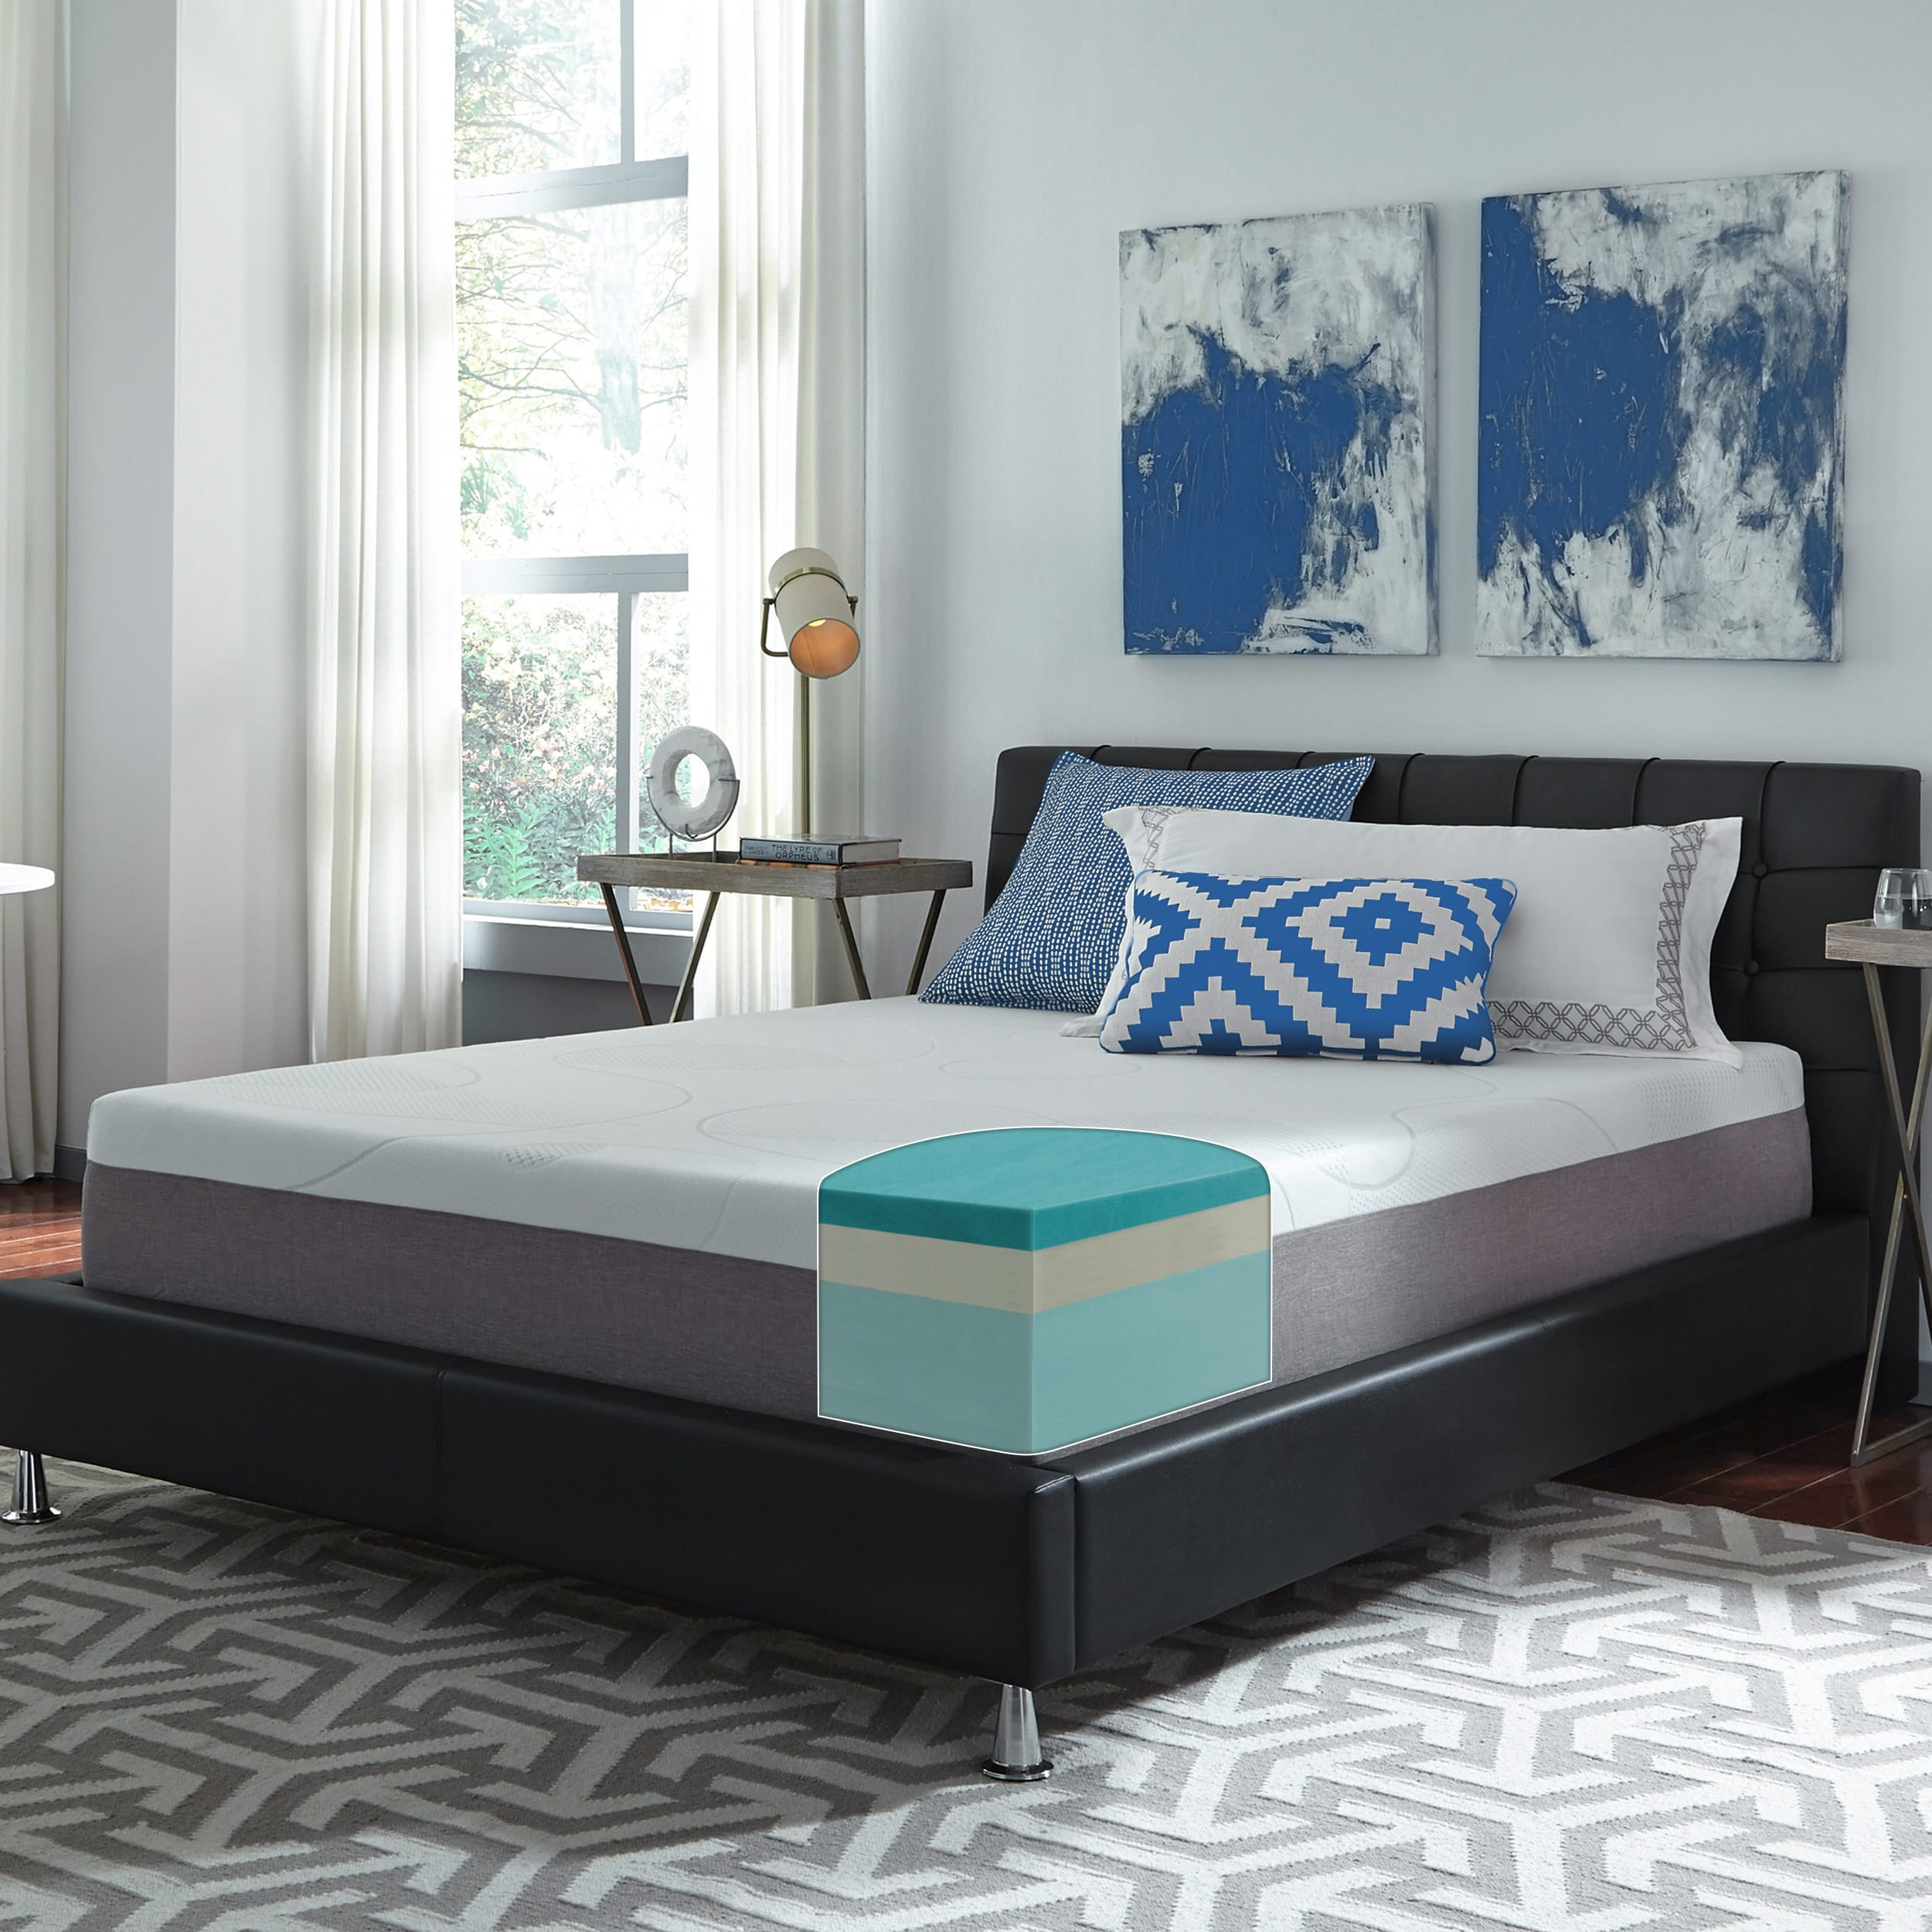 Used Twin Mattress For Sale Buy Twin Size Mattresses Online At Overstock Our Best Bedroom